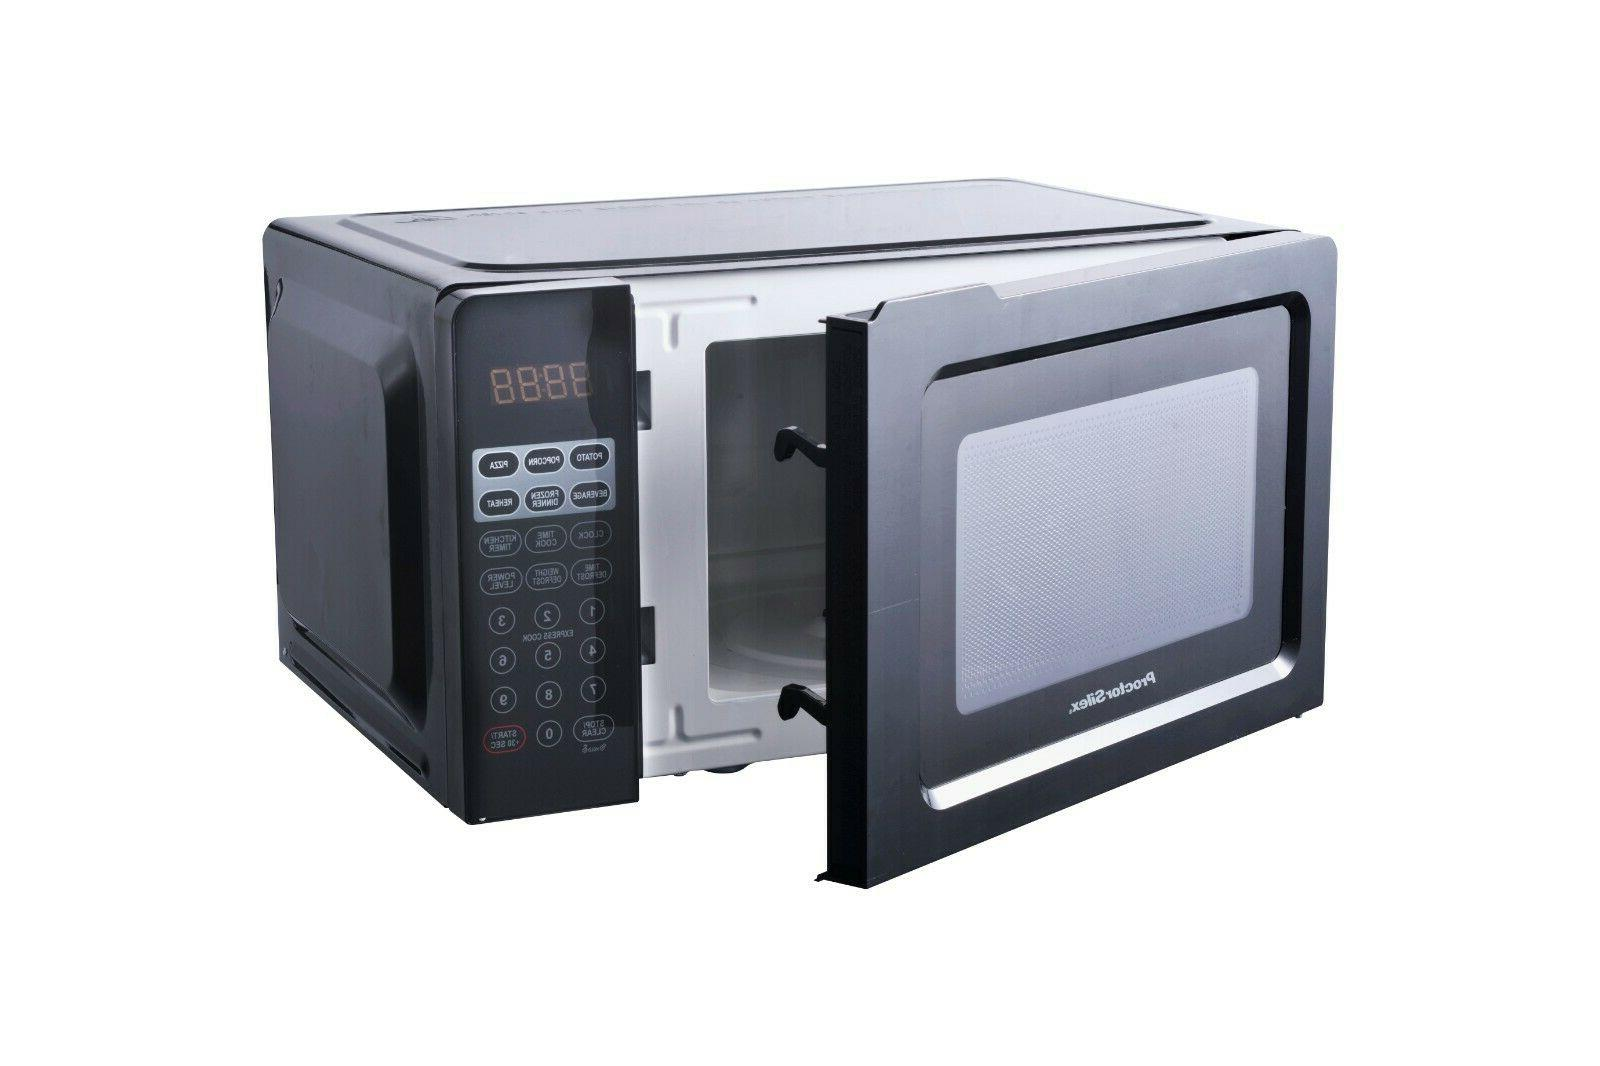 Small Table Microwave Oven 0.7 Black Defrosts Cooks Food